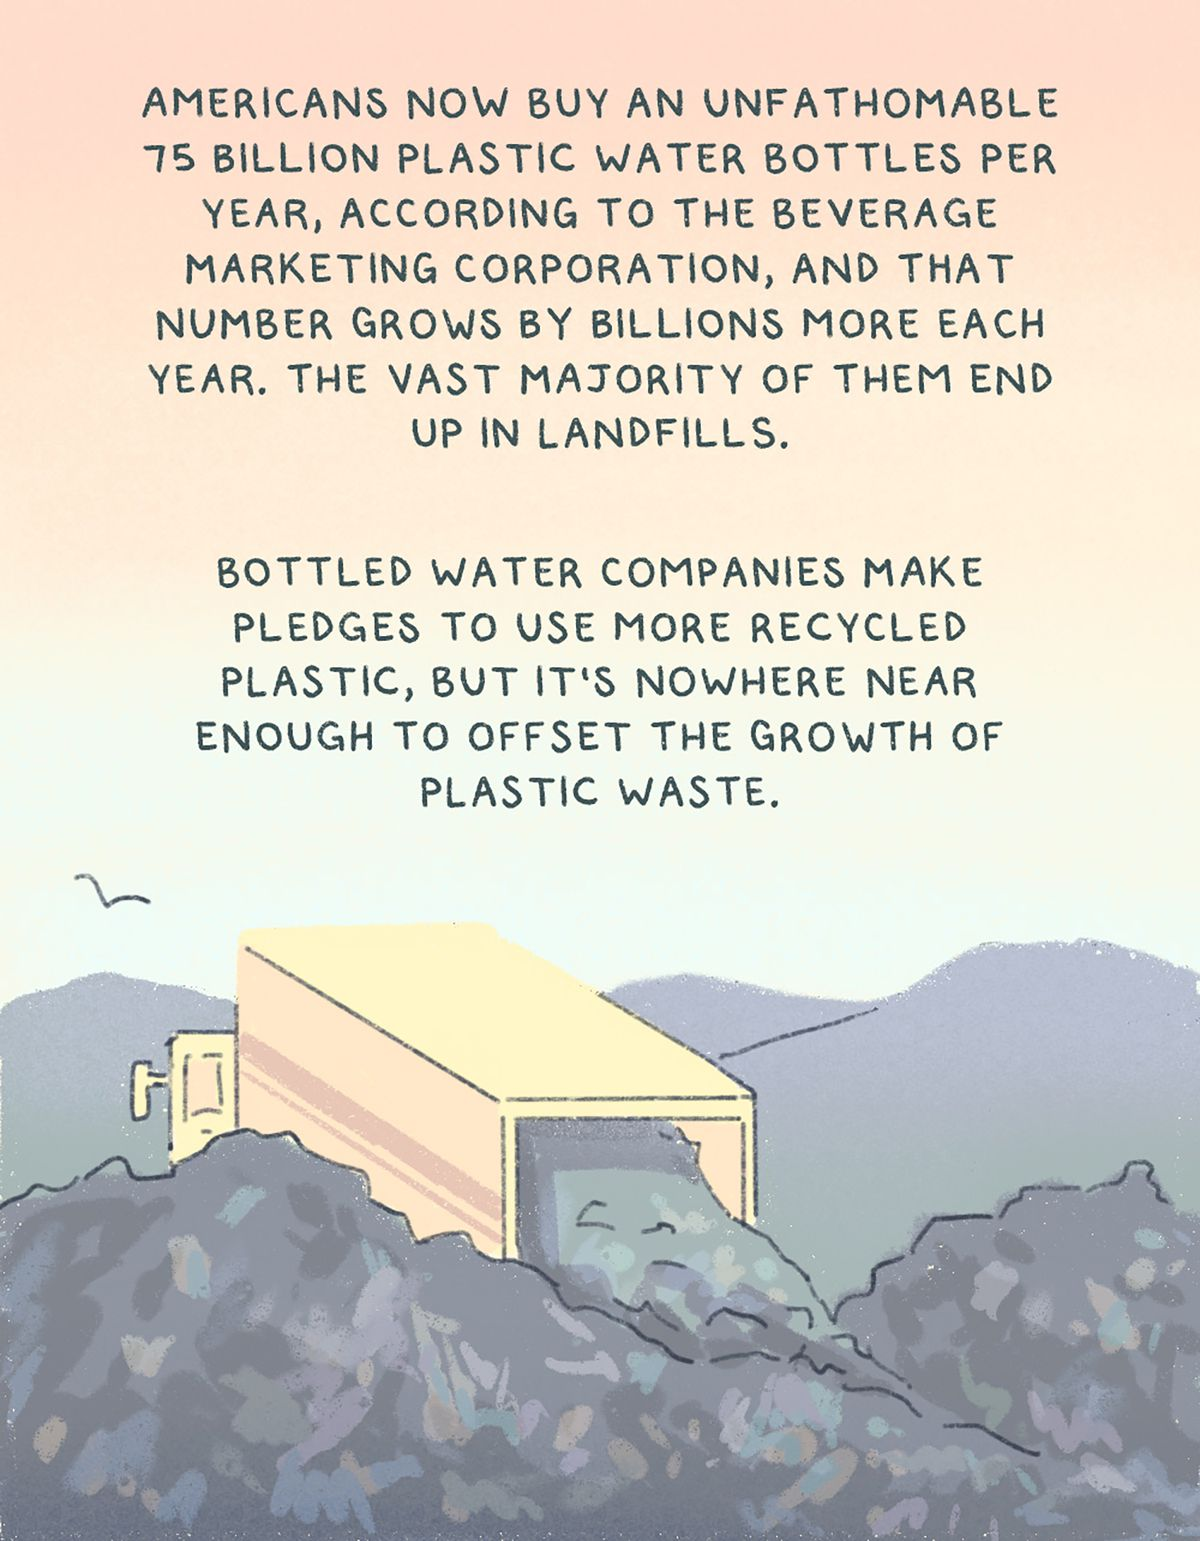 """""""Americans now buy an unfathomable 75 billion plastic water bottles per year, according to the Beverage Marketing Corporation, and that number grows by billions more each year. The vast majority of them end up in landfills. Bottled water companies make pledges to use more recycled plastic, but it's nowhere near enough to offset the growth of plastic waste."""" Drawing of a garbage dump."""